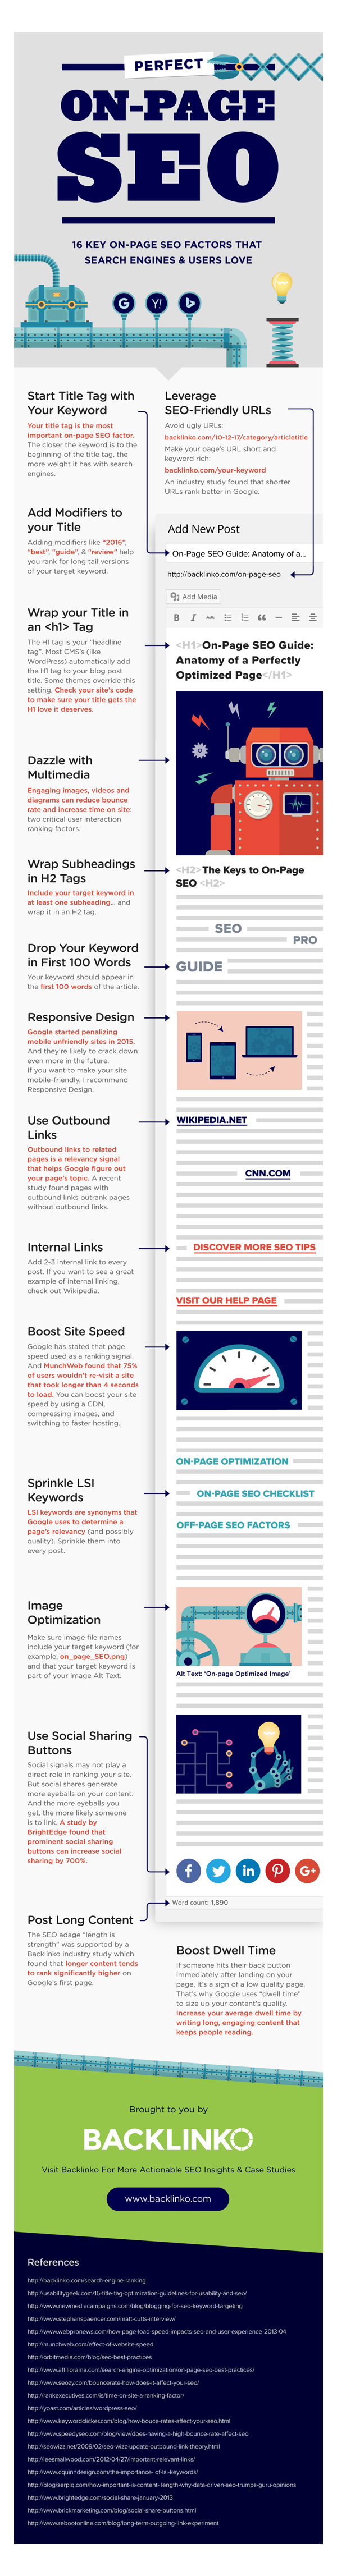 Infographie_perfect-on-page-seo